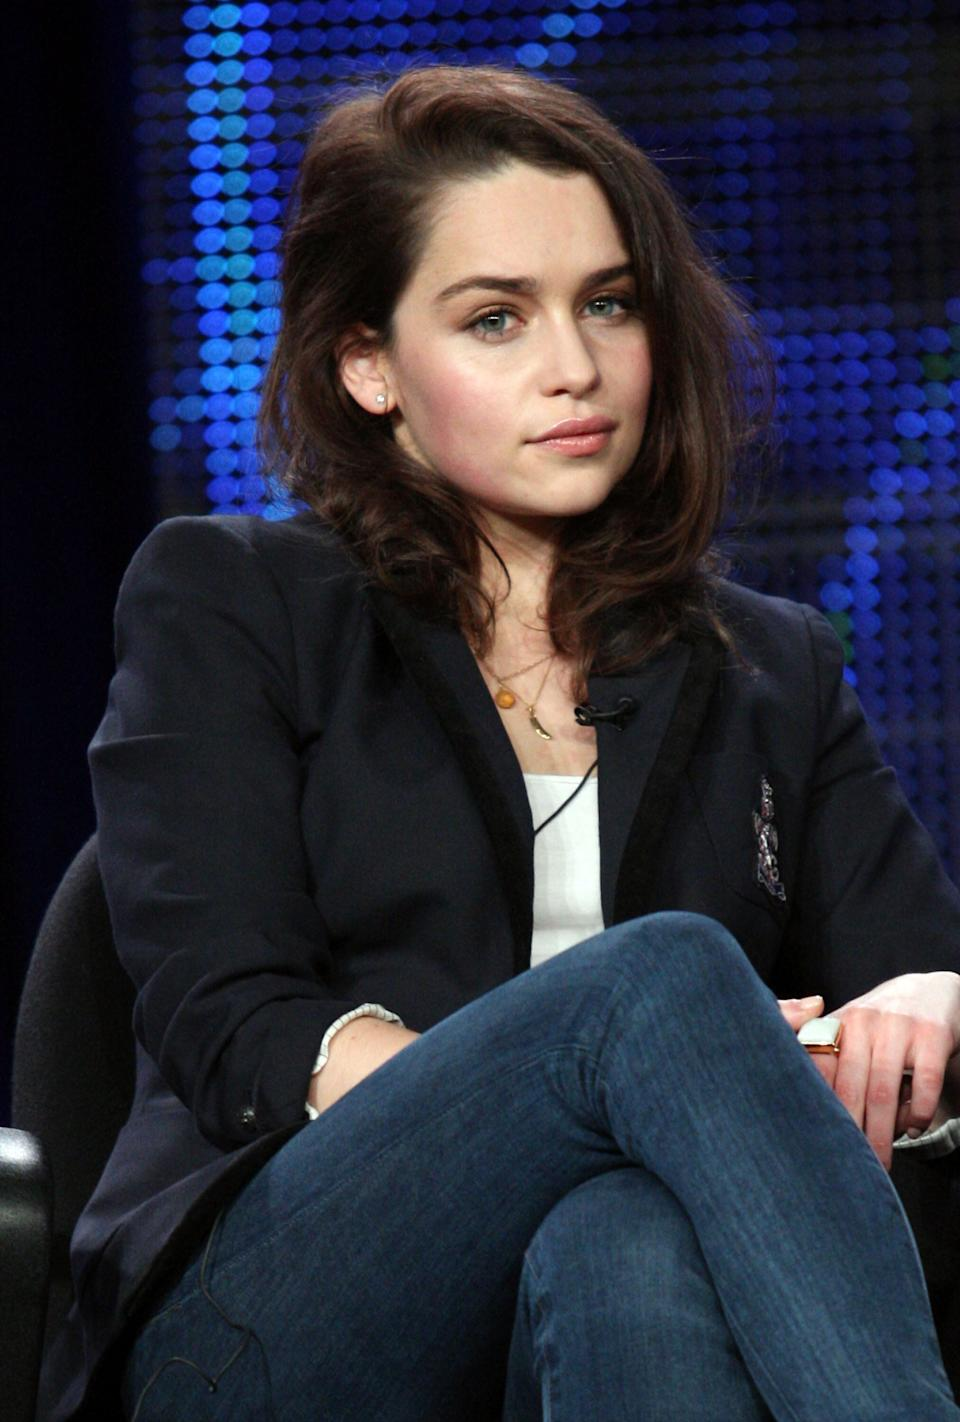 PASADENA, CA - JANUARY 07:  Actor Emilia Clarke speaks during the 'Game of Thrones' panel at the HBO portion of the 2011 Winter TCA press tour held at the Langham Hotel on January 7, 2011 in Pasadena, California.  (Photo by Frederick M. Brown/Getty Images)